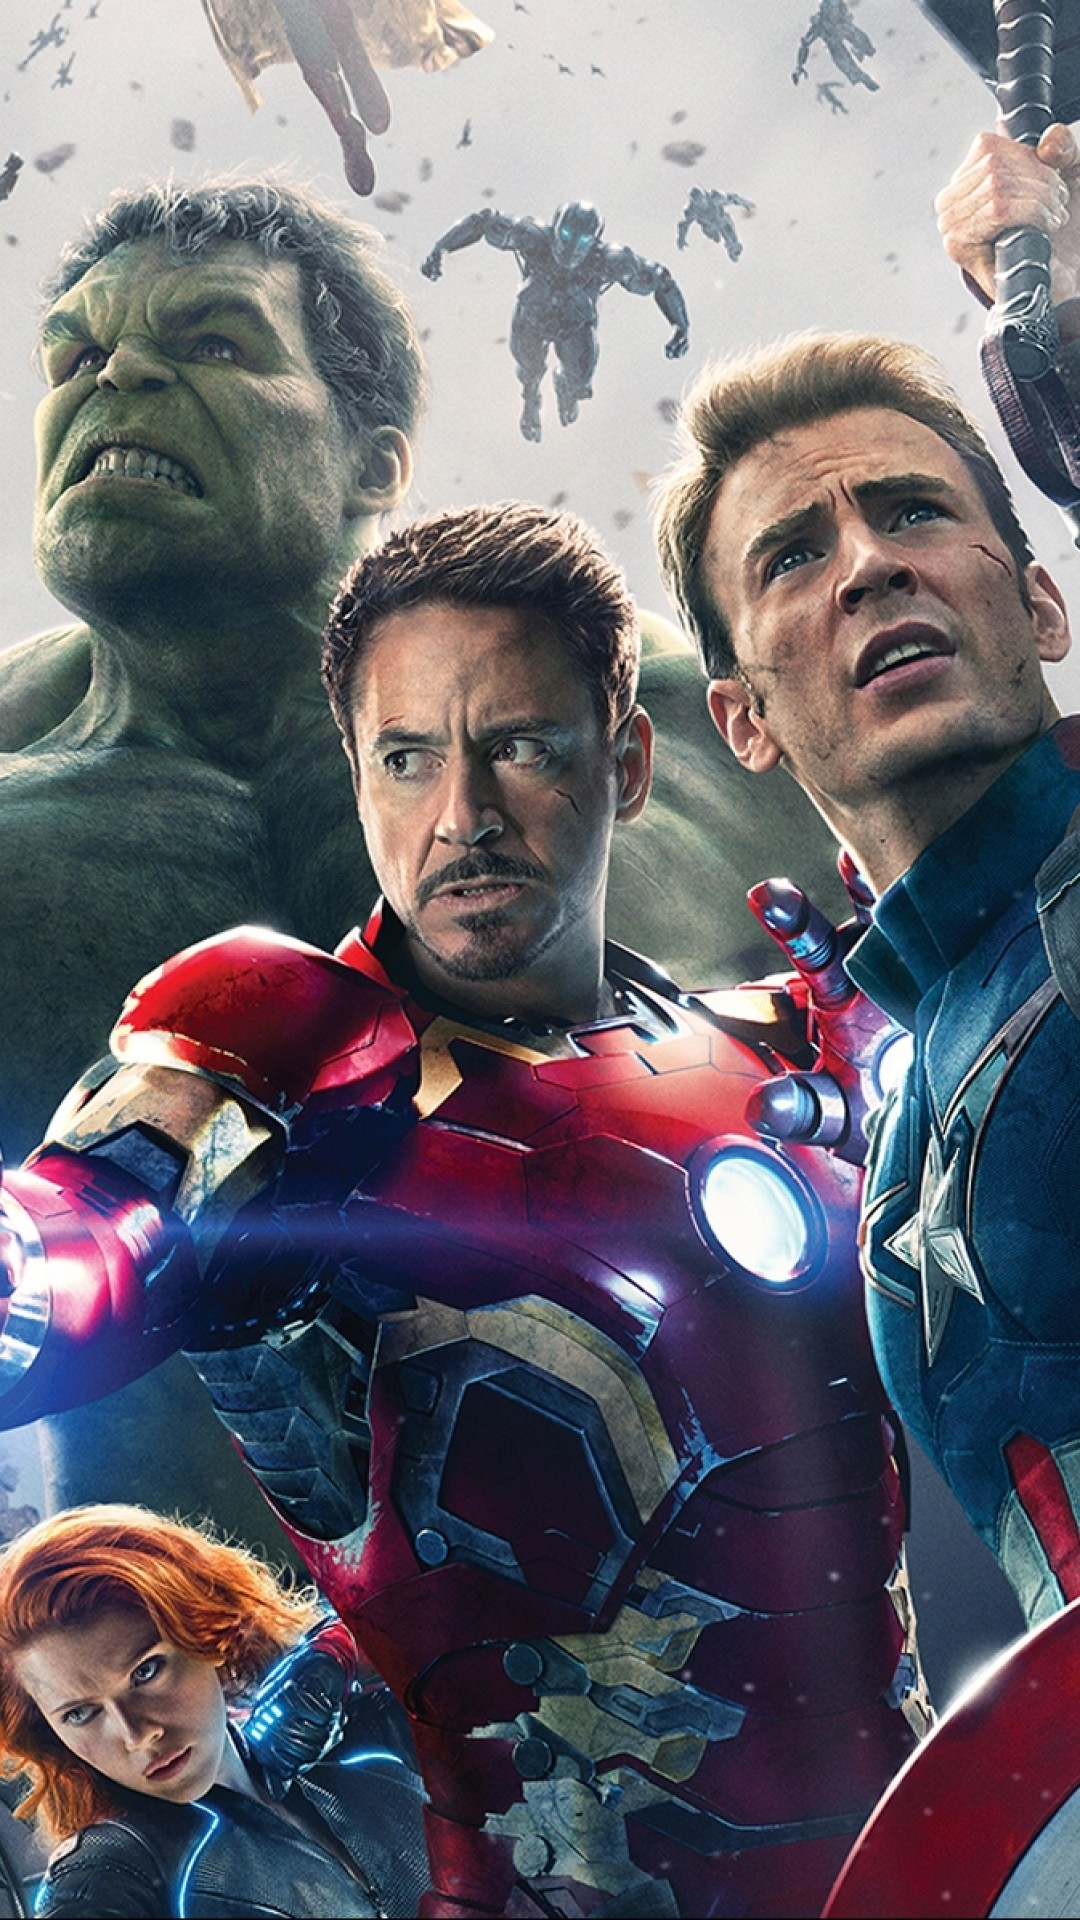 Download Hd Wallpapers Of Avengers Group Avenger Age Of Ultron